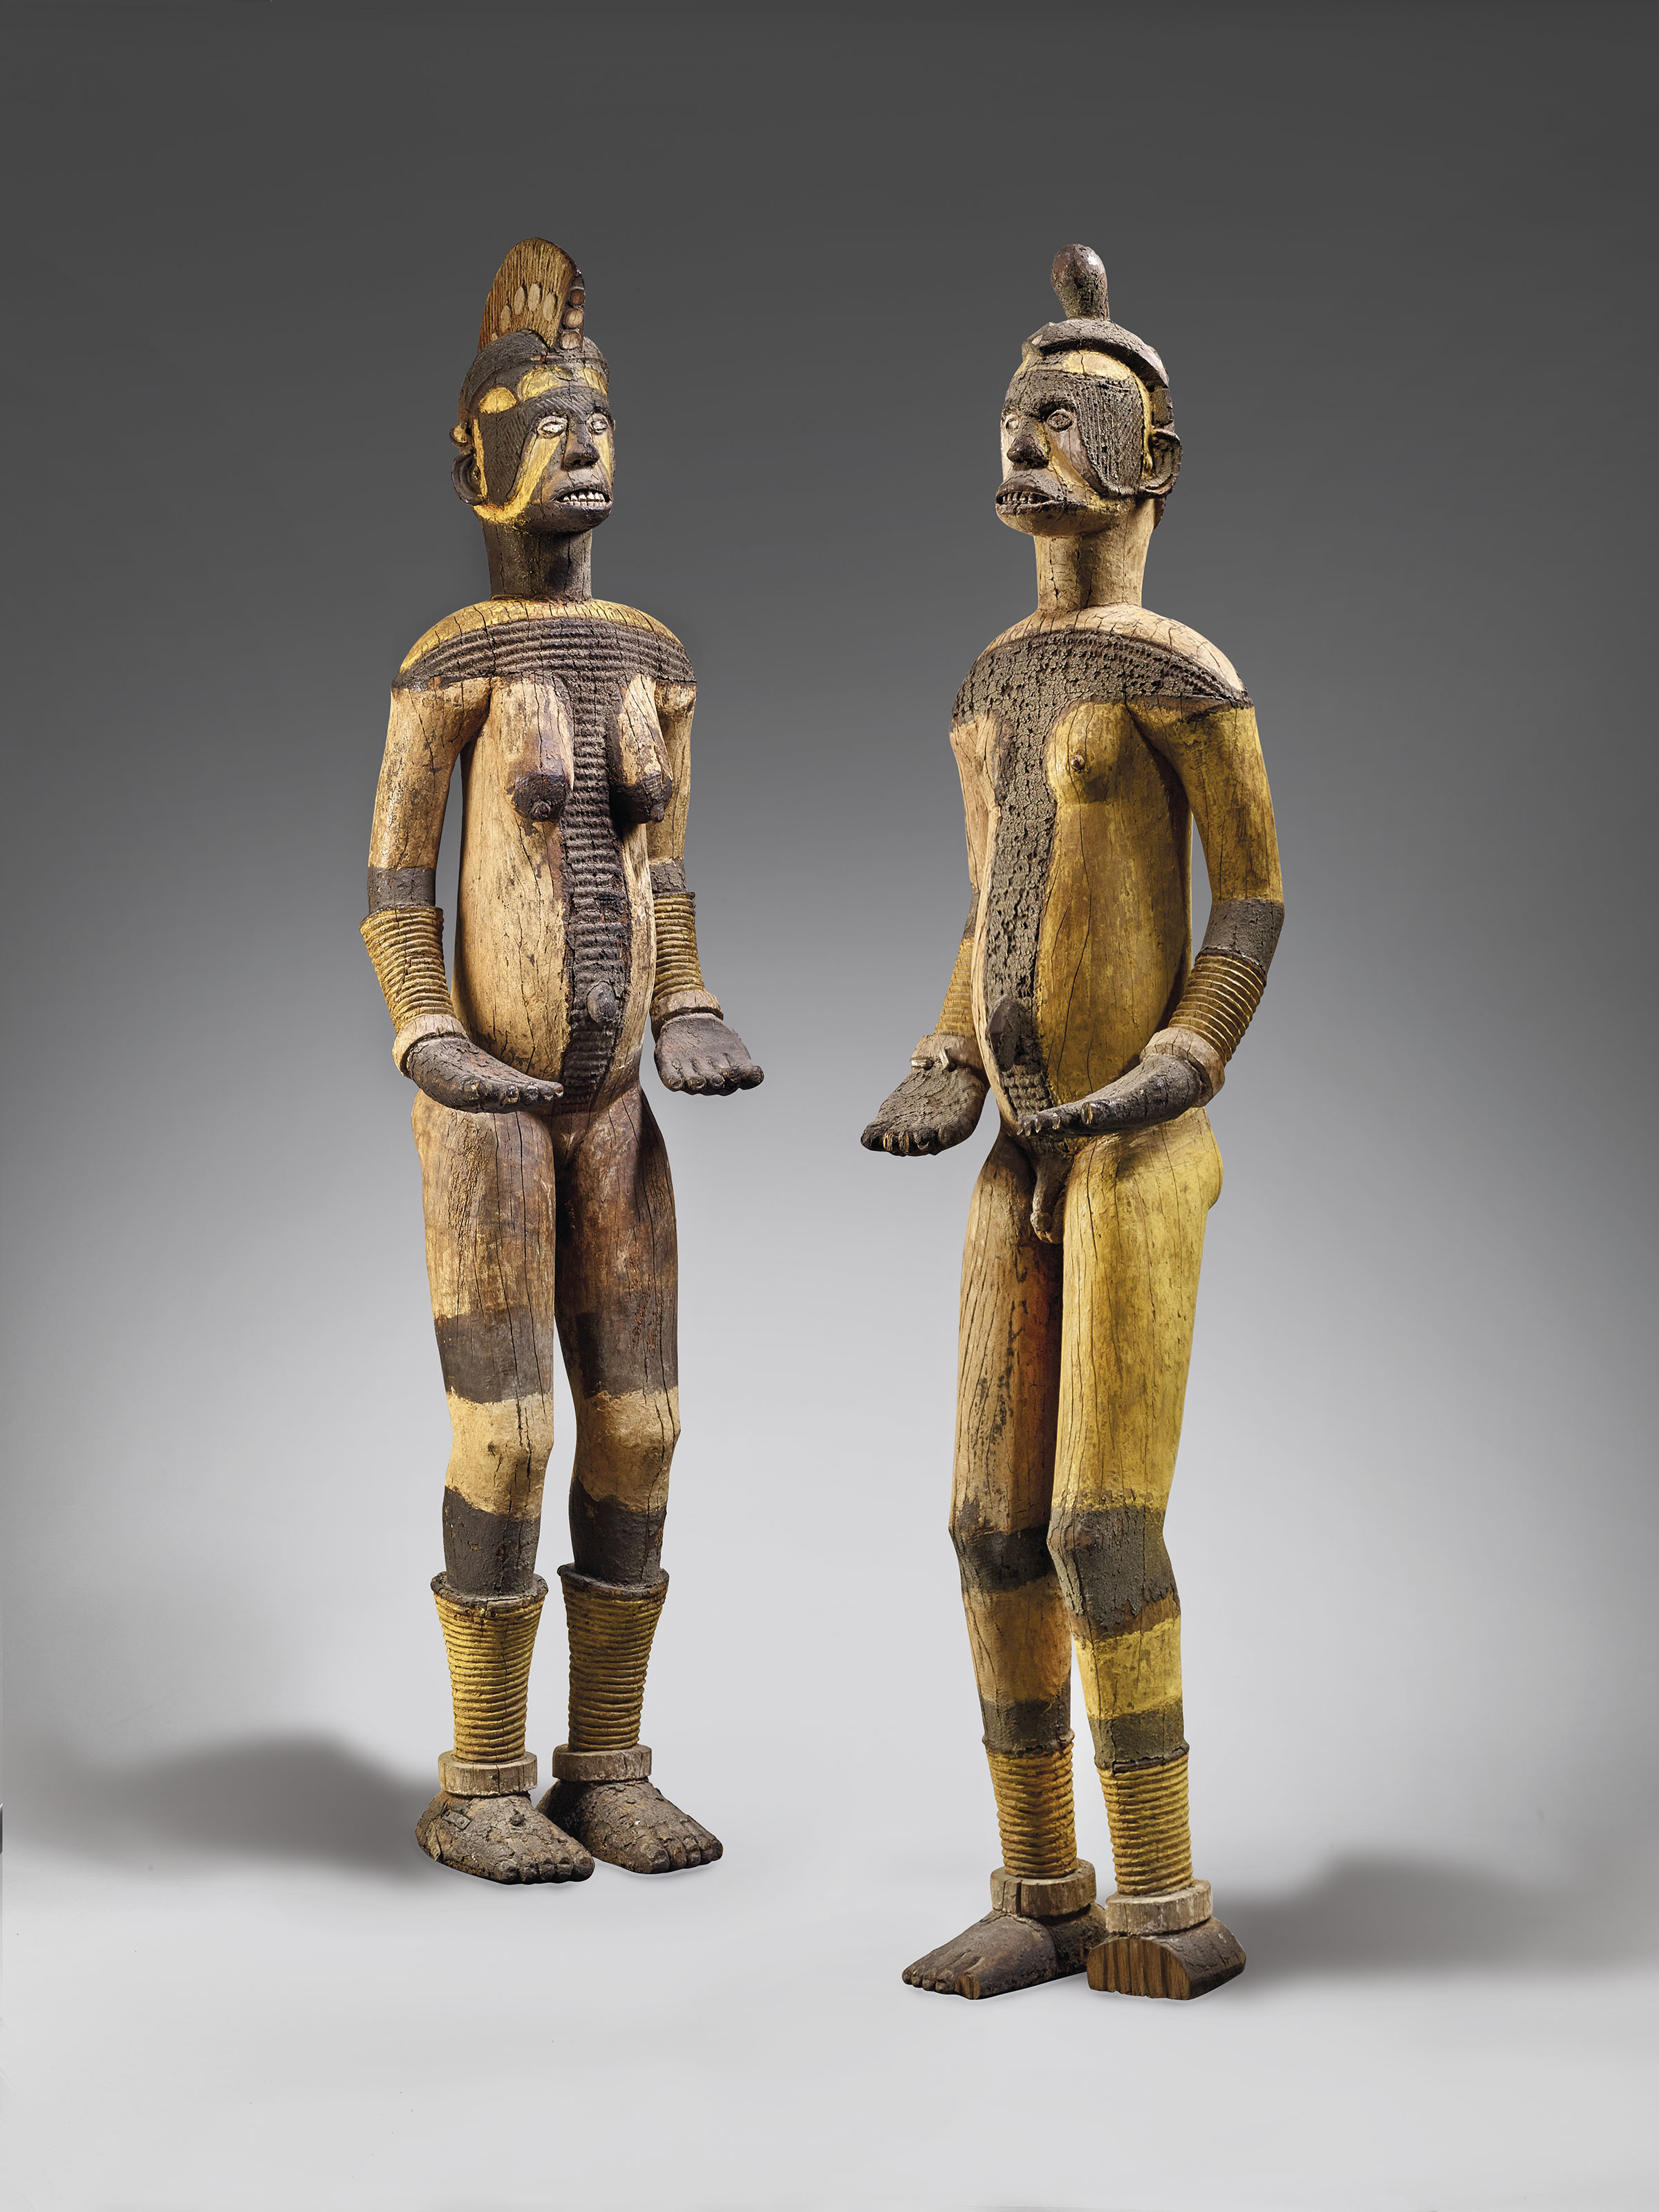 PAIRE DE STATUES IGBO ATTRIBUÉE AU MAÎTRE D'AWKA A COUPLE OF IGBO FIGURES ATTRIBUTED TO THE AWKA MASTER